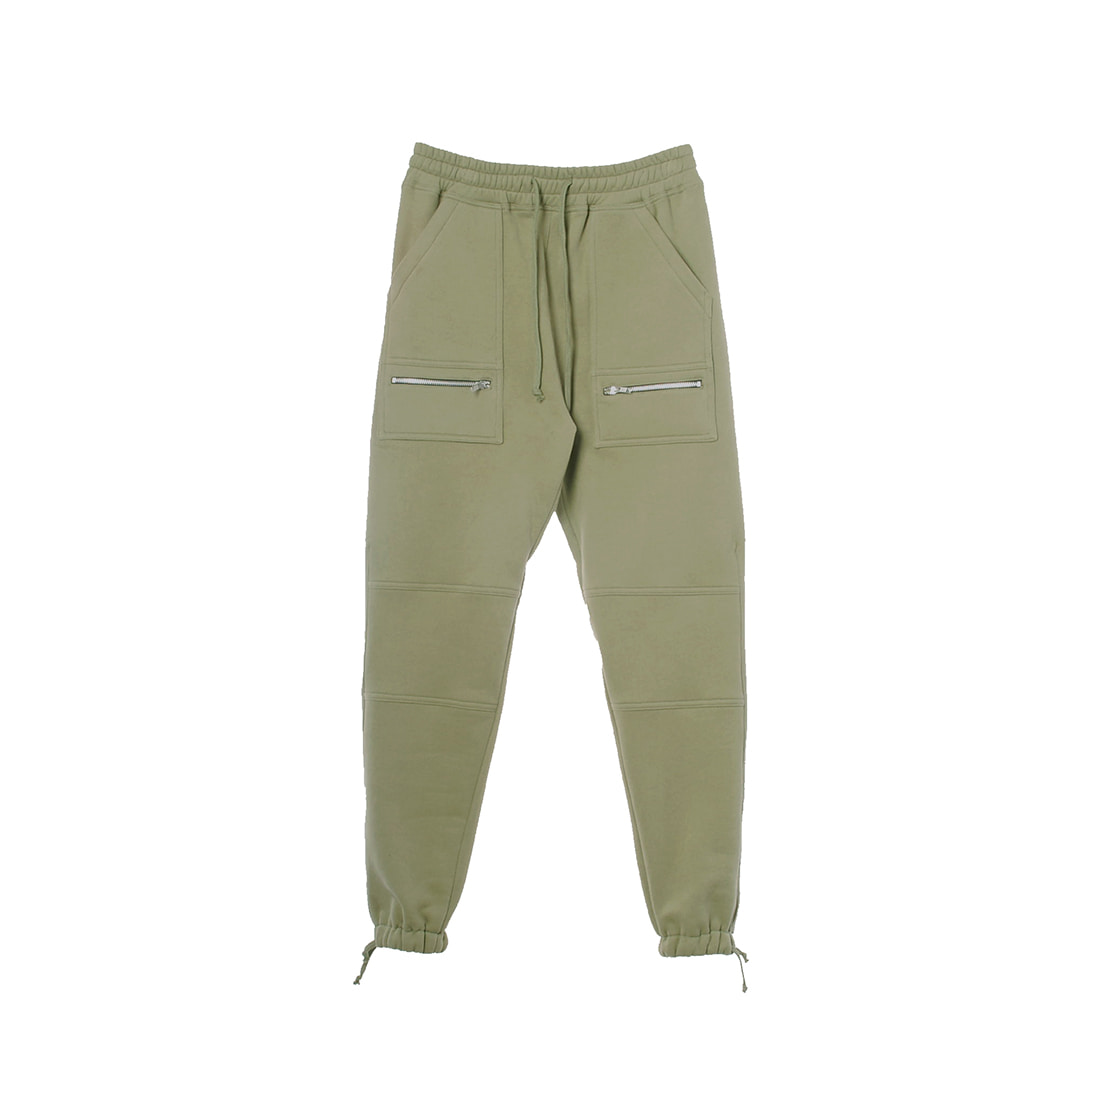 KHAKI STRING JOGGER PANTS